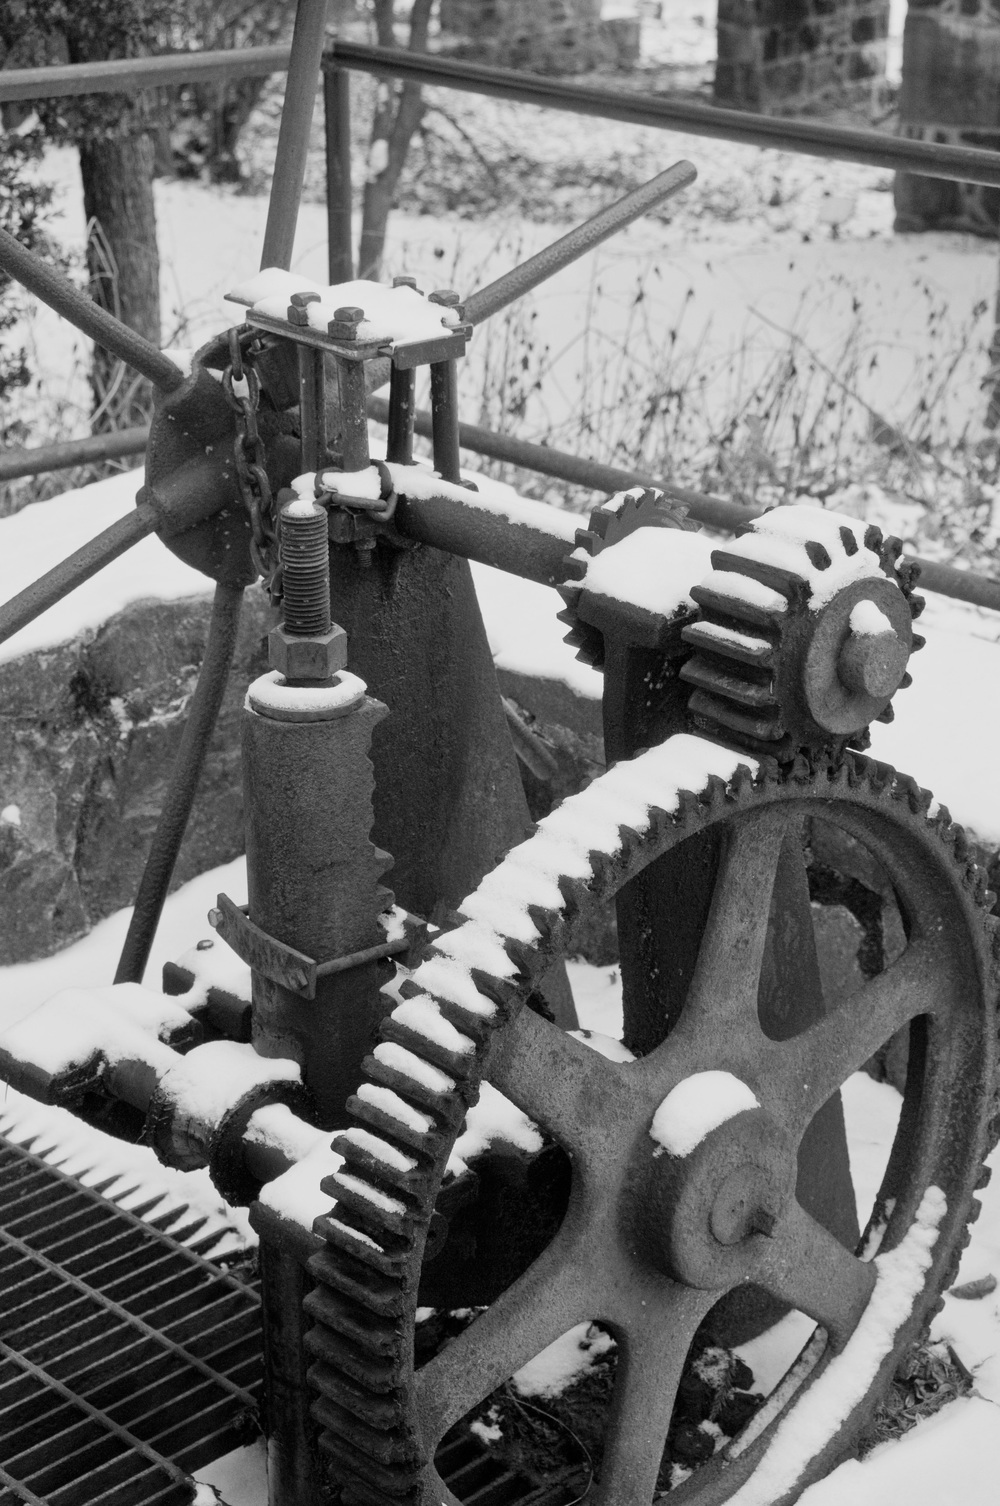 millrace gears at Hagley Museum